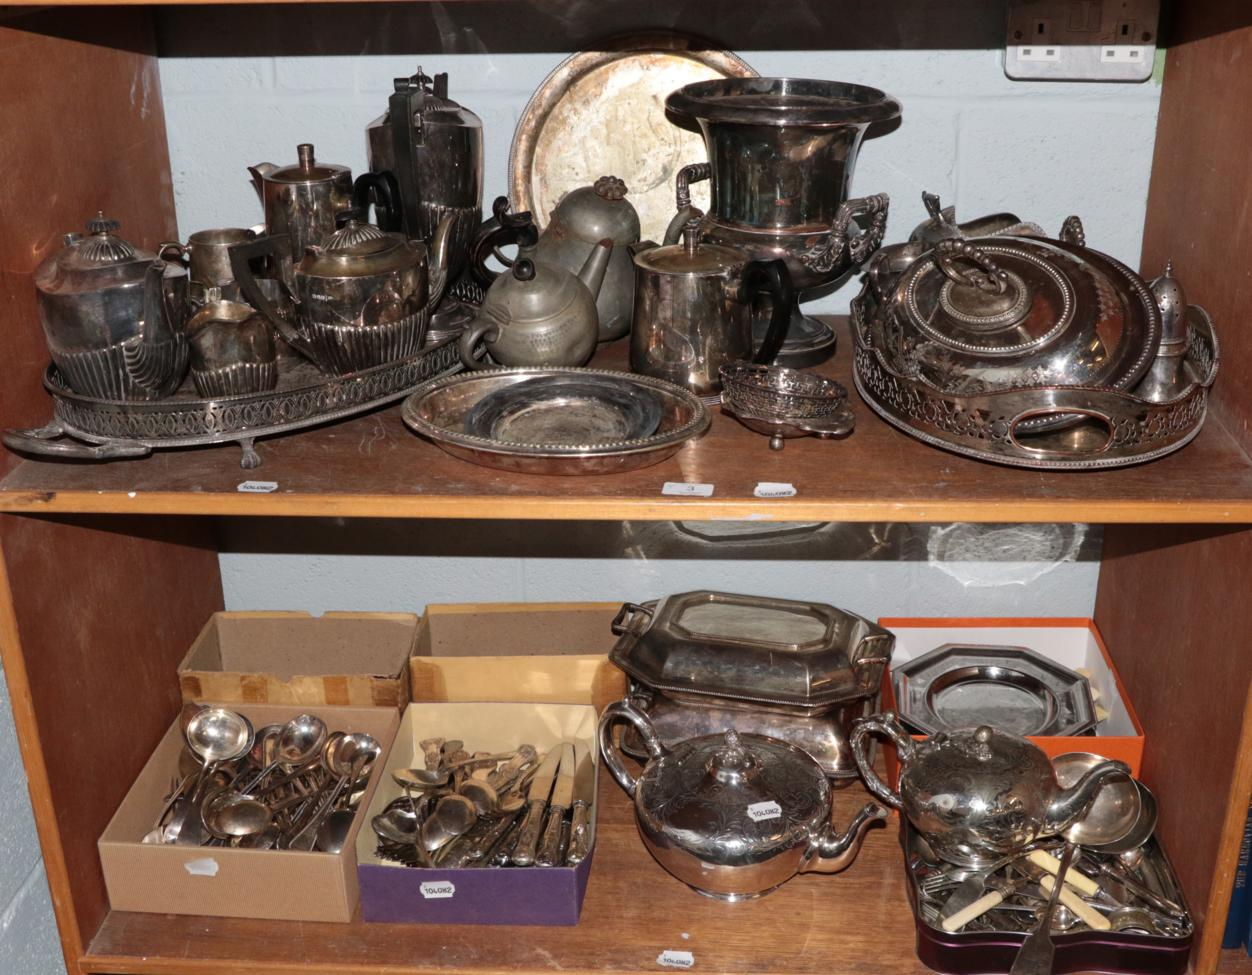 Lot 3 - A large quantity of silver plated wares including wine-cooler, teapots, trays, meat dishes, fiddle